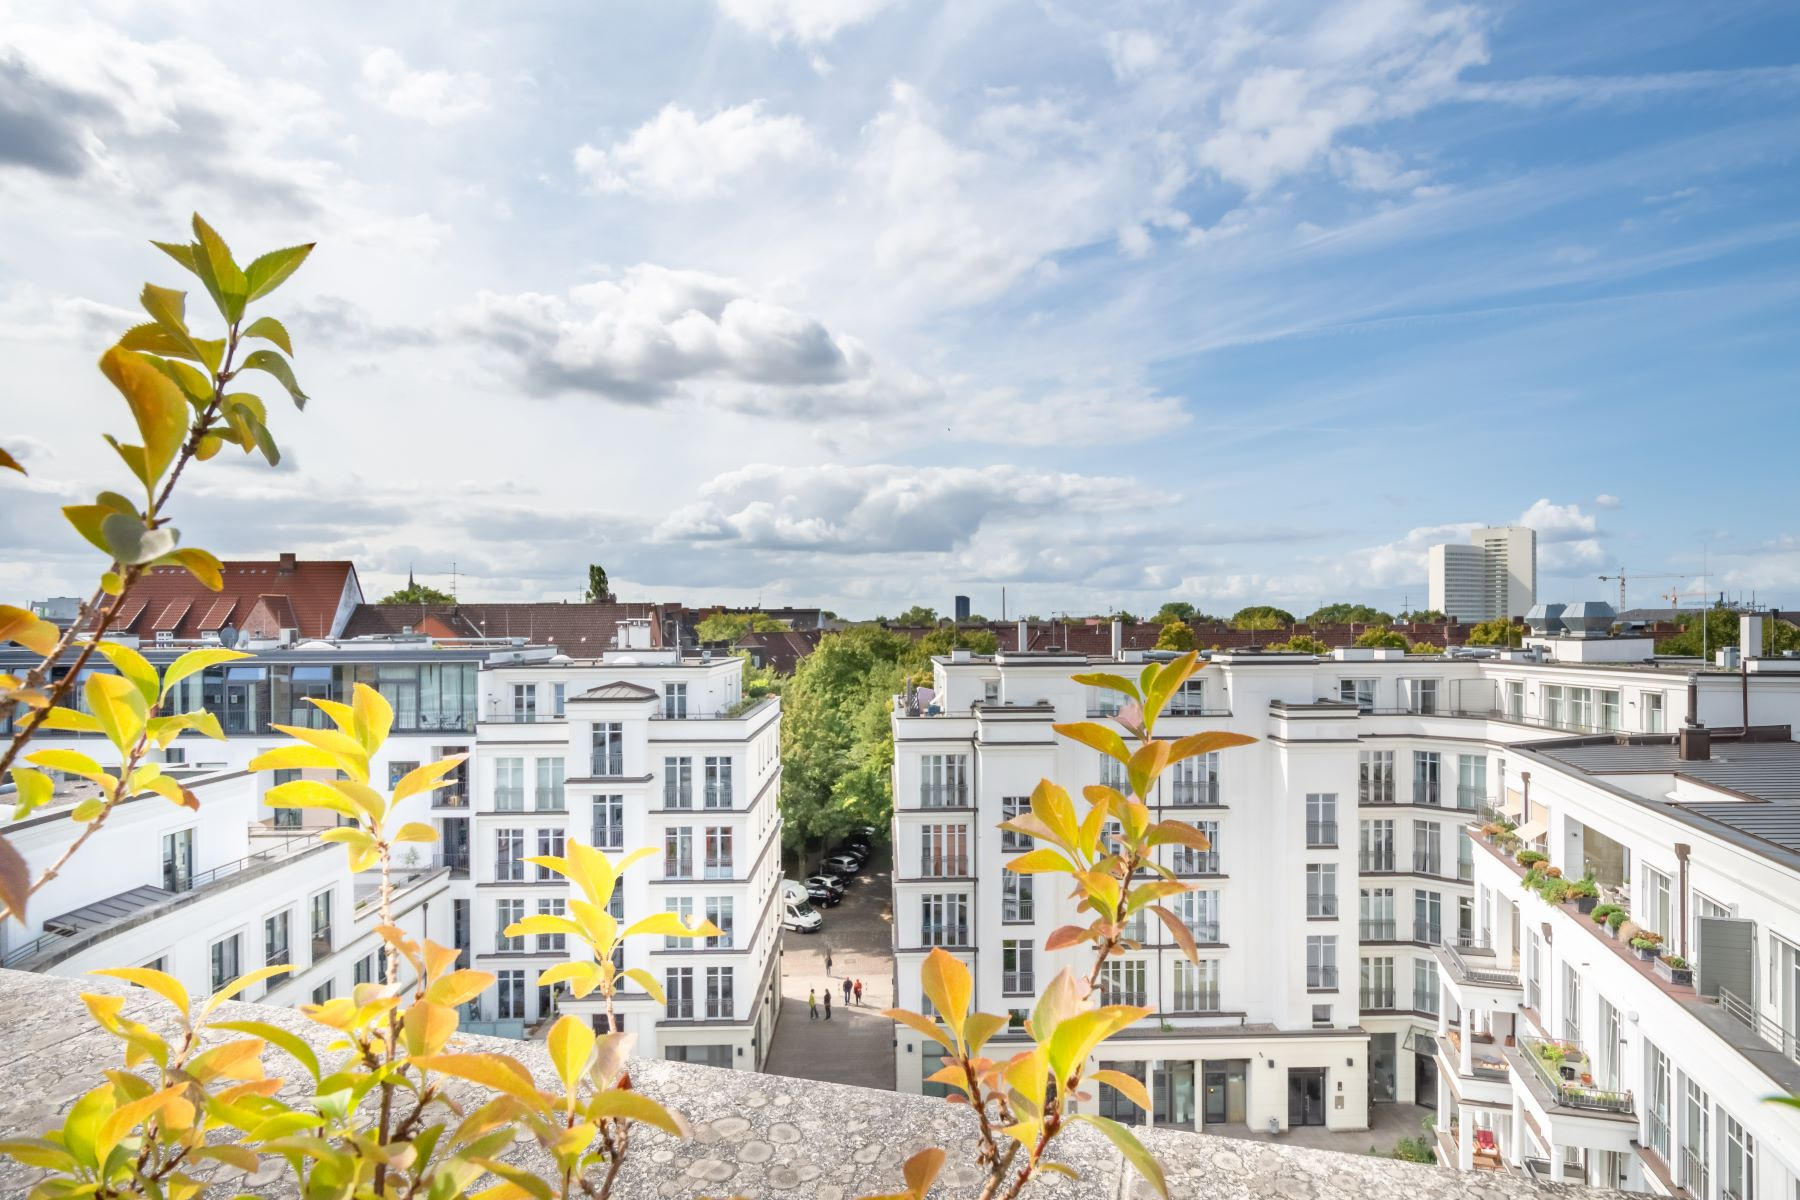 Additional photo for property listing at Spectacular penthouse with panoramic view and pool Völckersstraße 42 Hamburg, Hamburg 22765 Germany